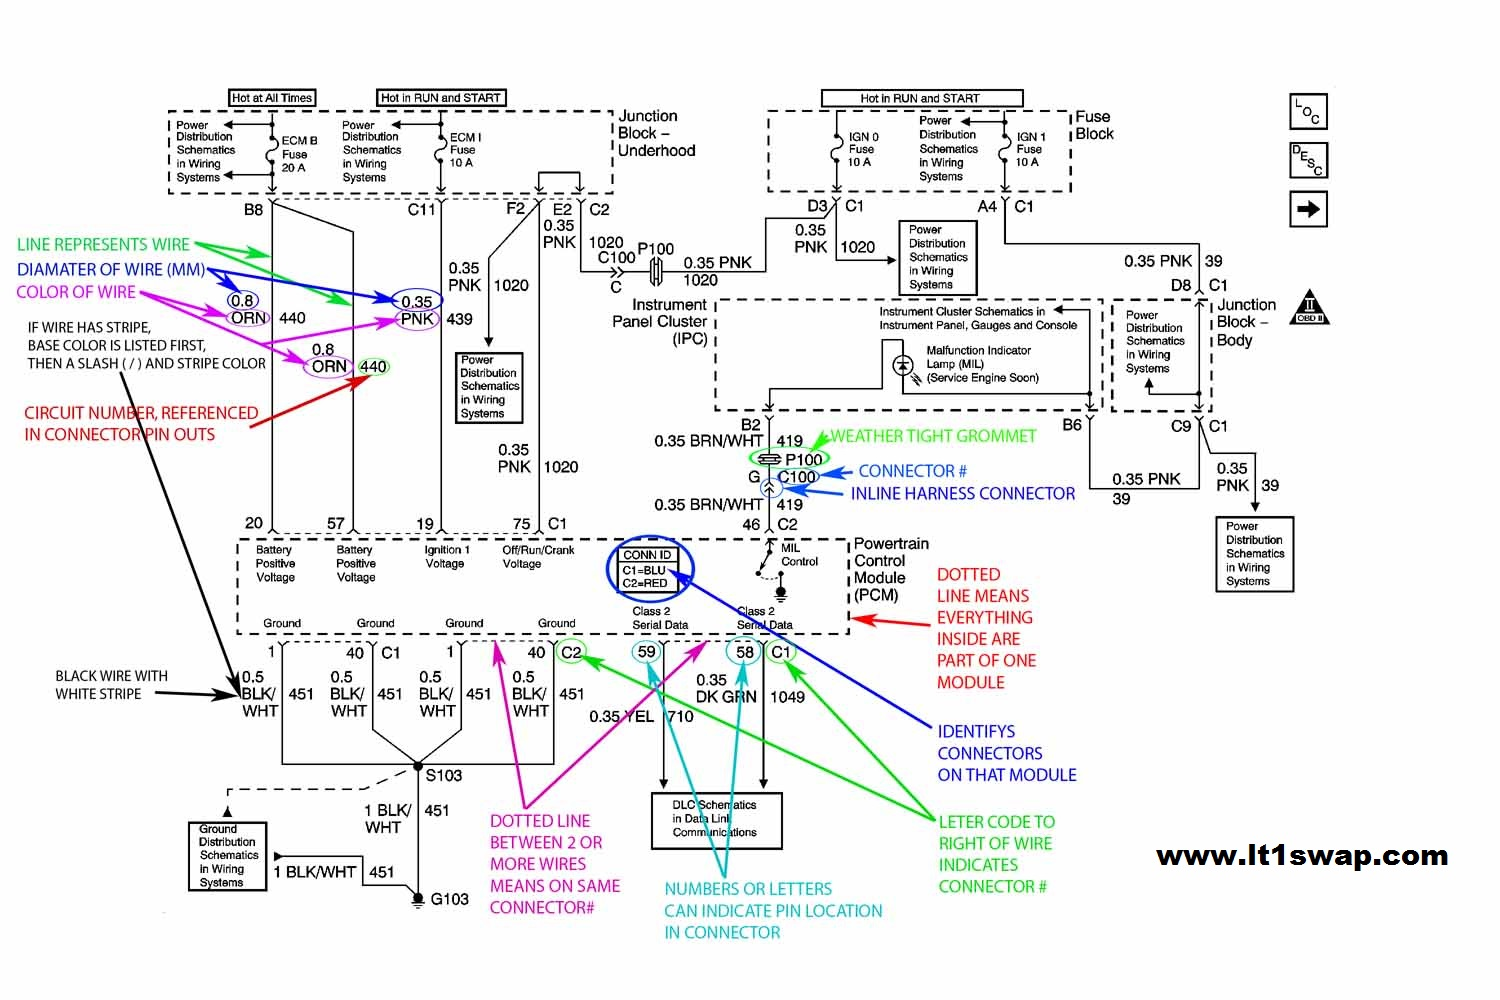 hight resolution of wiring harness information sample schematic similar to what you may see in the following pages this